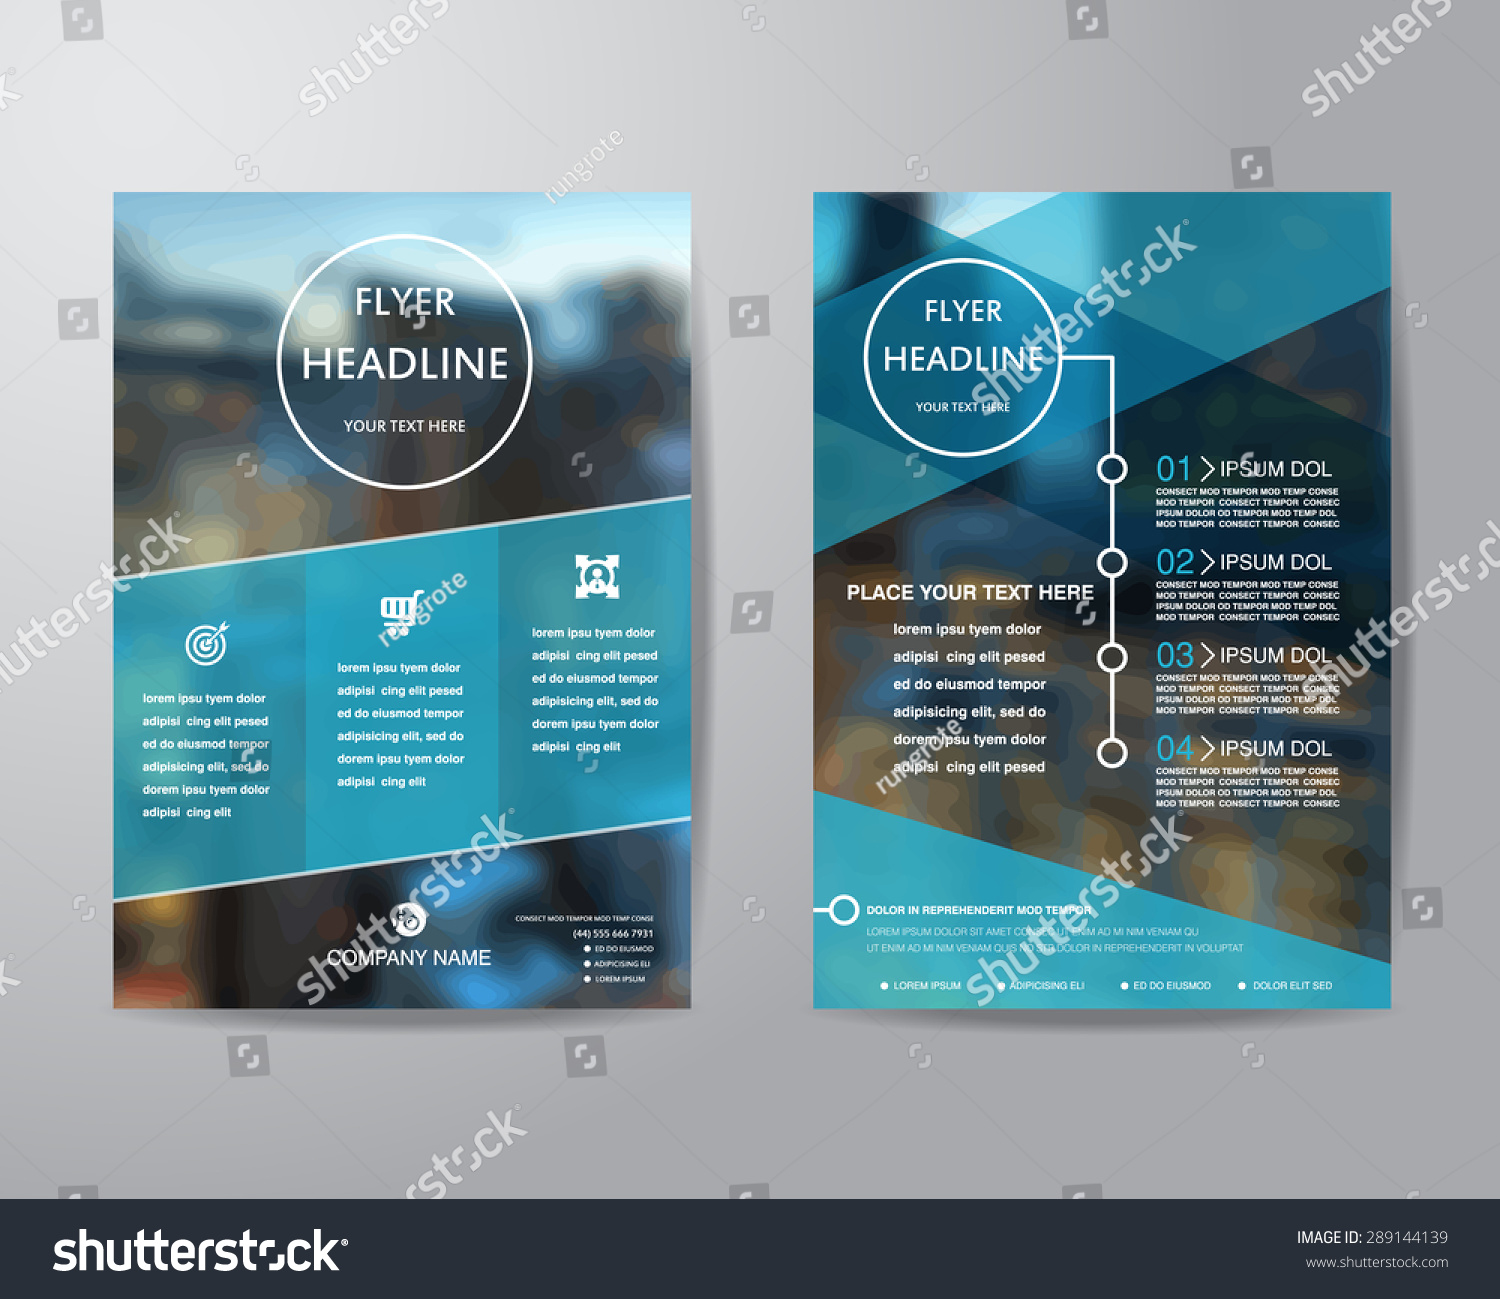 Business brochure flyer design layout template stock for Custom brochure design